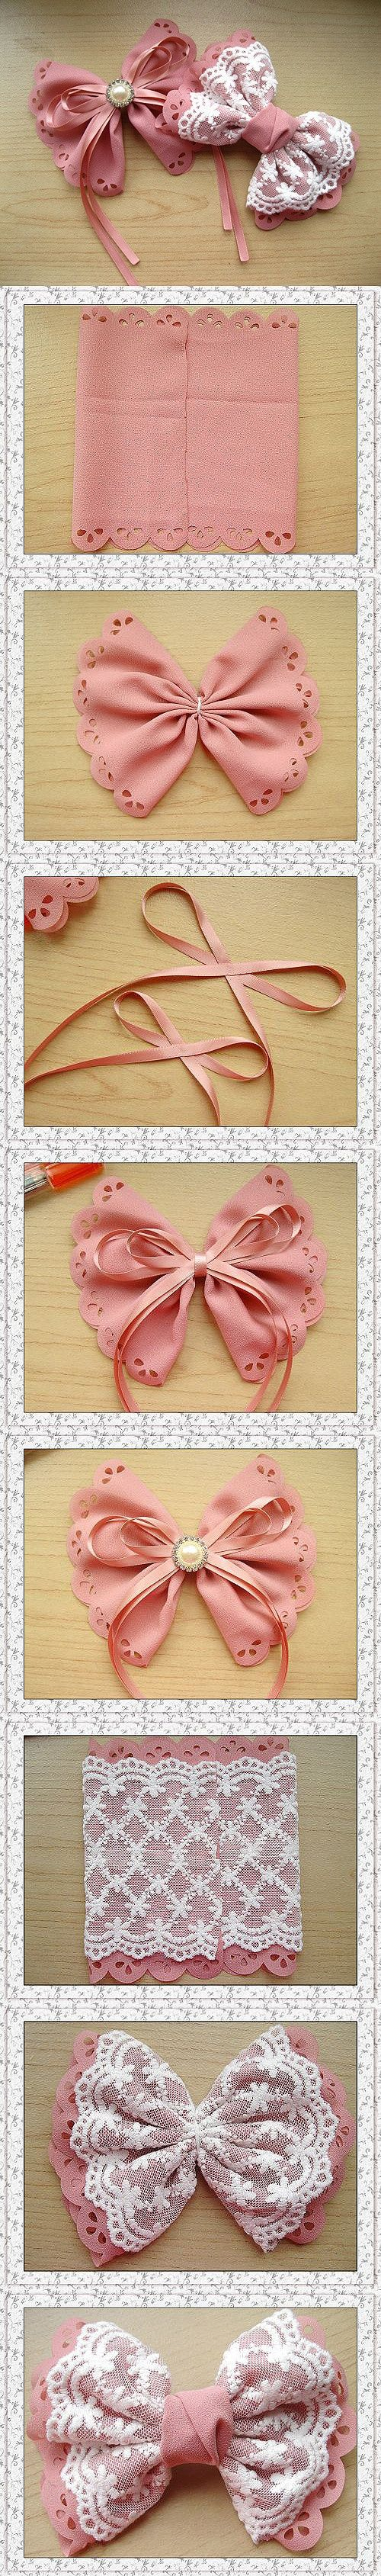 How To Make Hair Bows For Your Little Girls